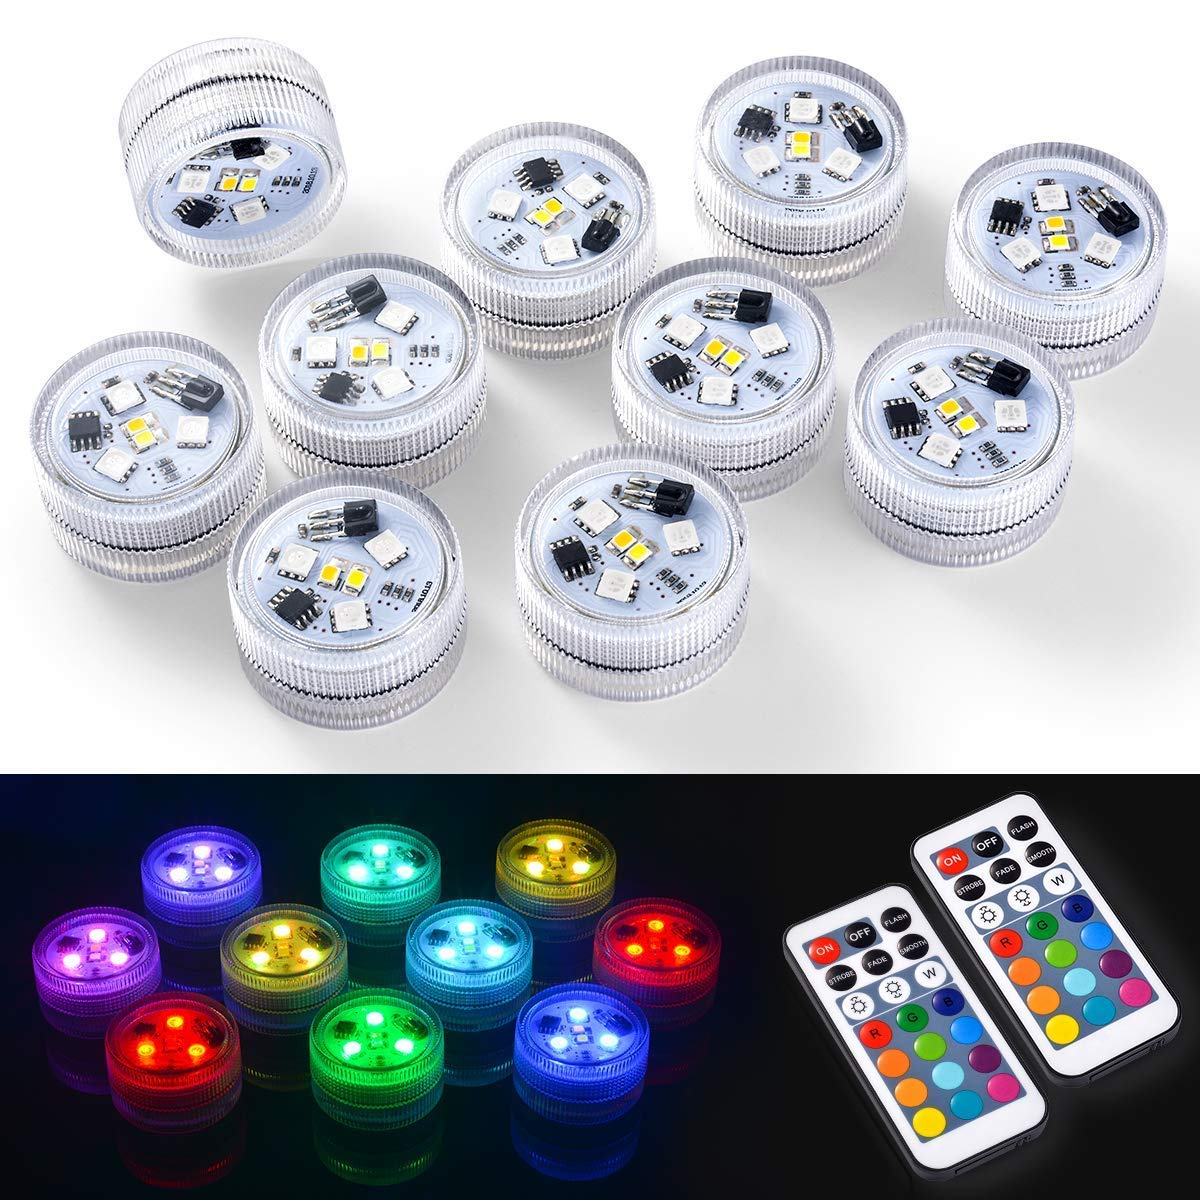 10pcs Submersible LED Lights 100% Waterproof CR2450 Mood Light Underwater Lights Battery Powered with IR Remote Control for Vase,Fishtank,Wedding,Halloween,Christmas